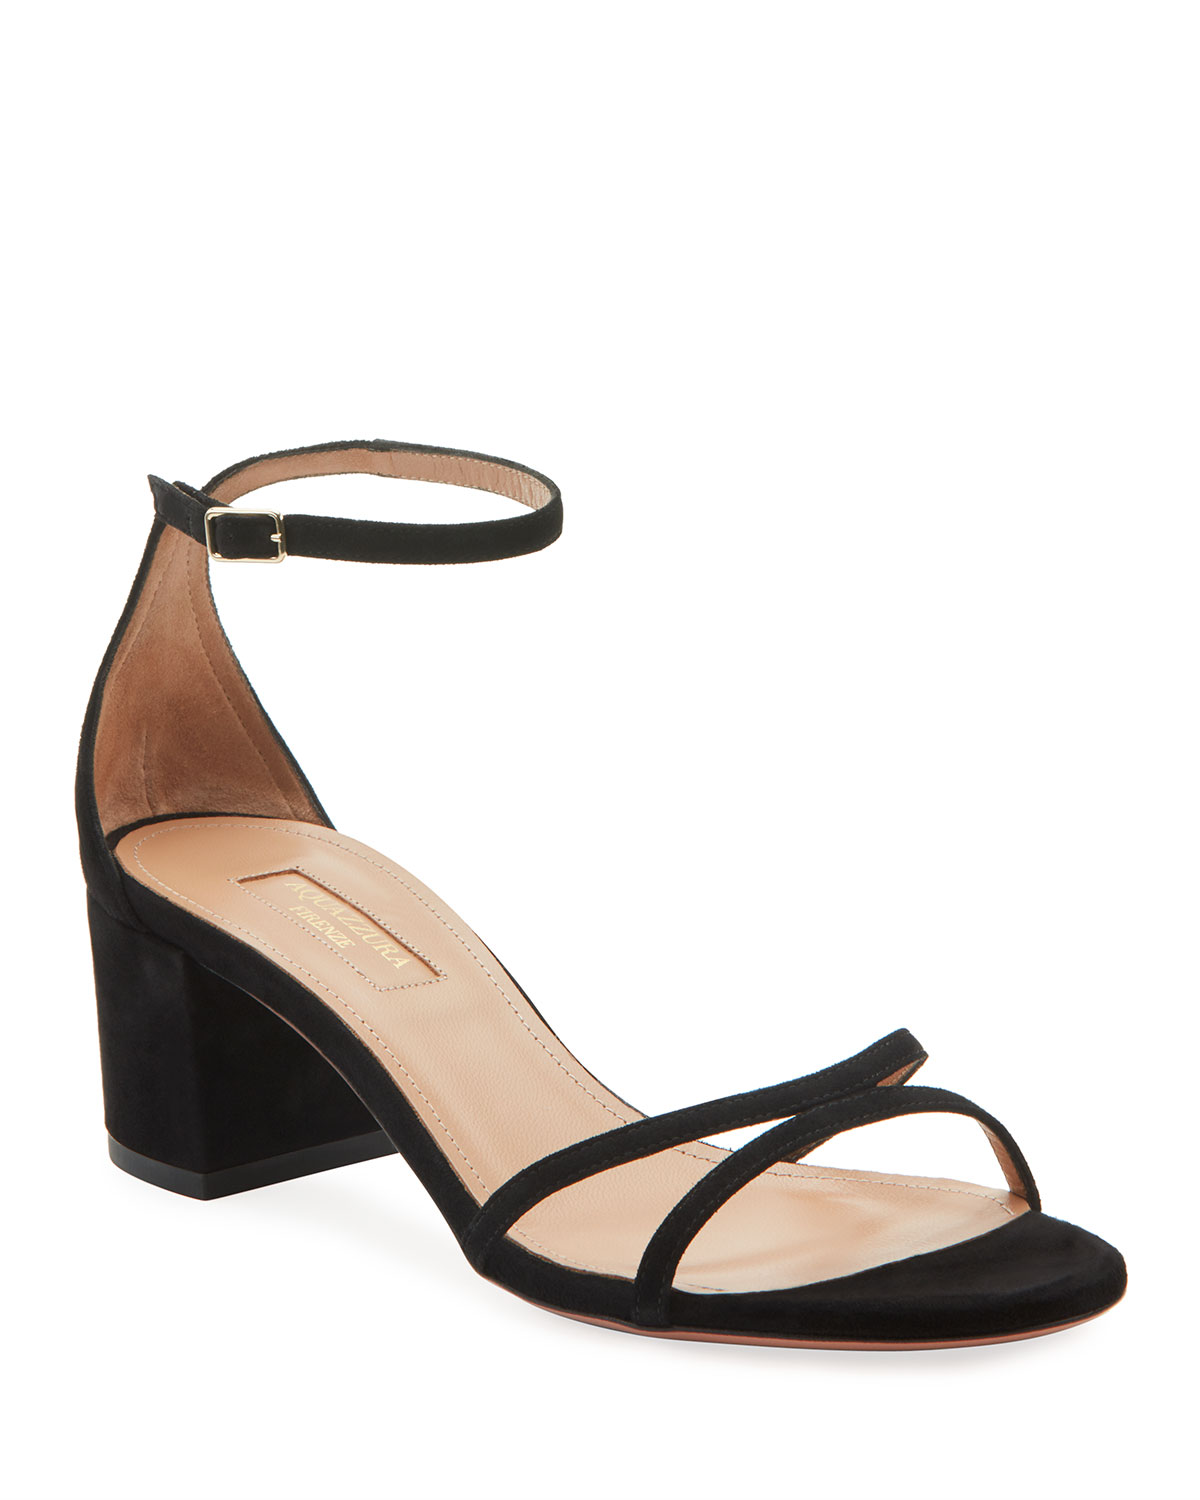 Aquazzura Purist Napa Leather Block-Heel Sandals